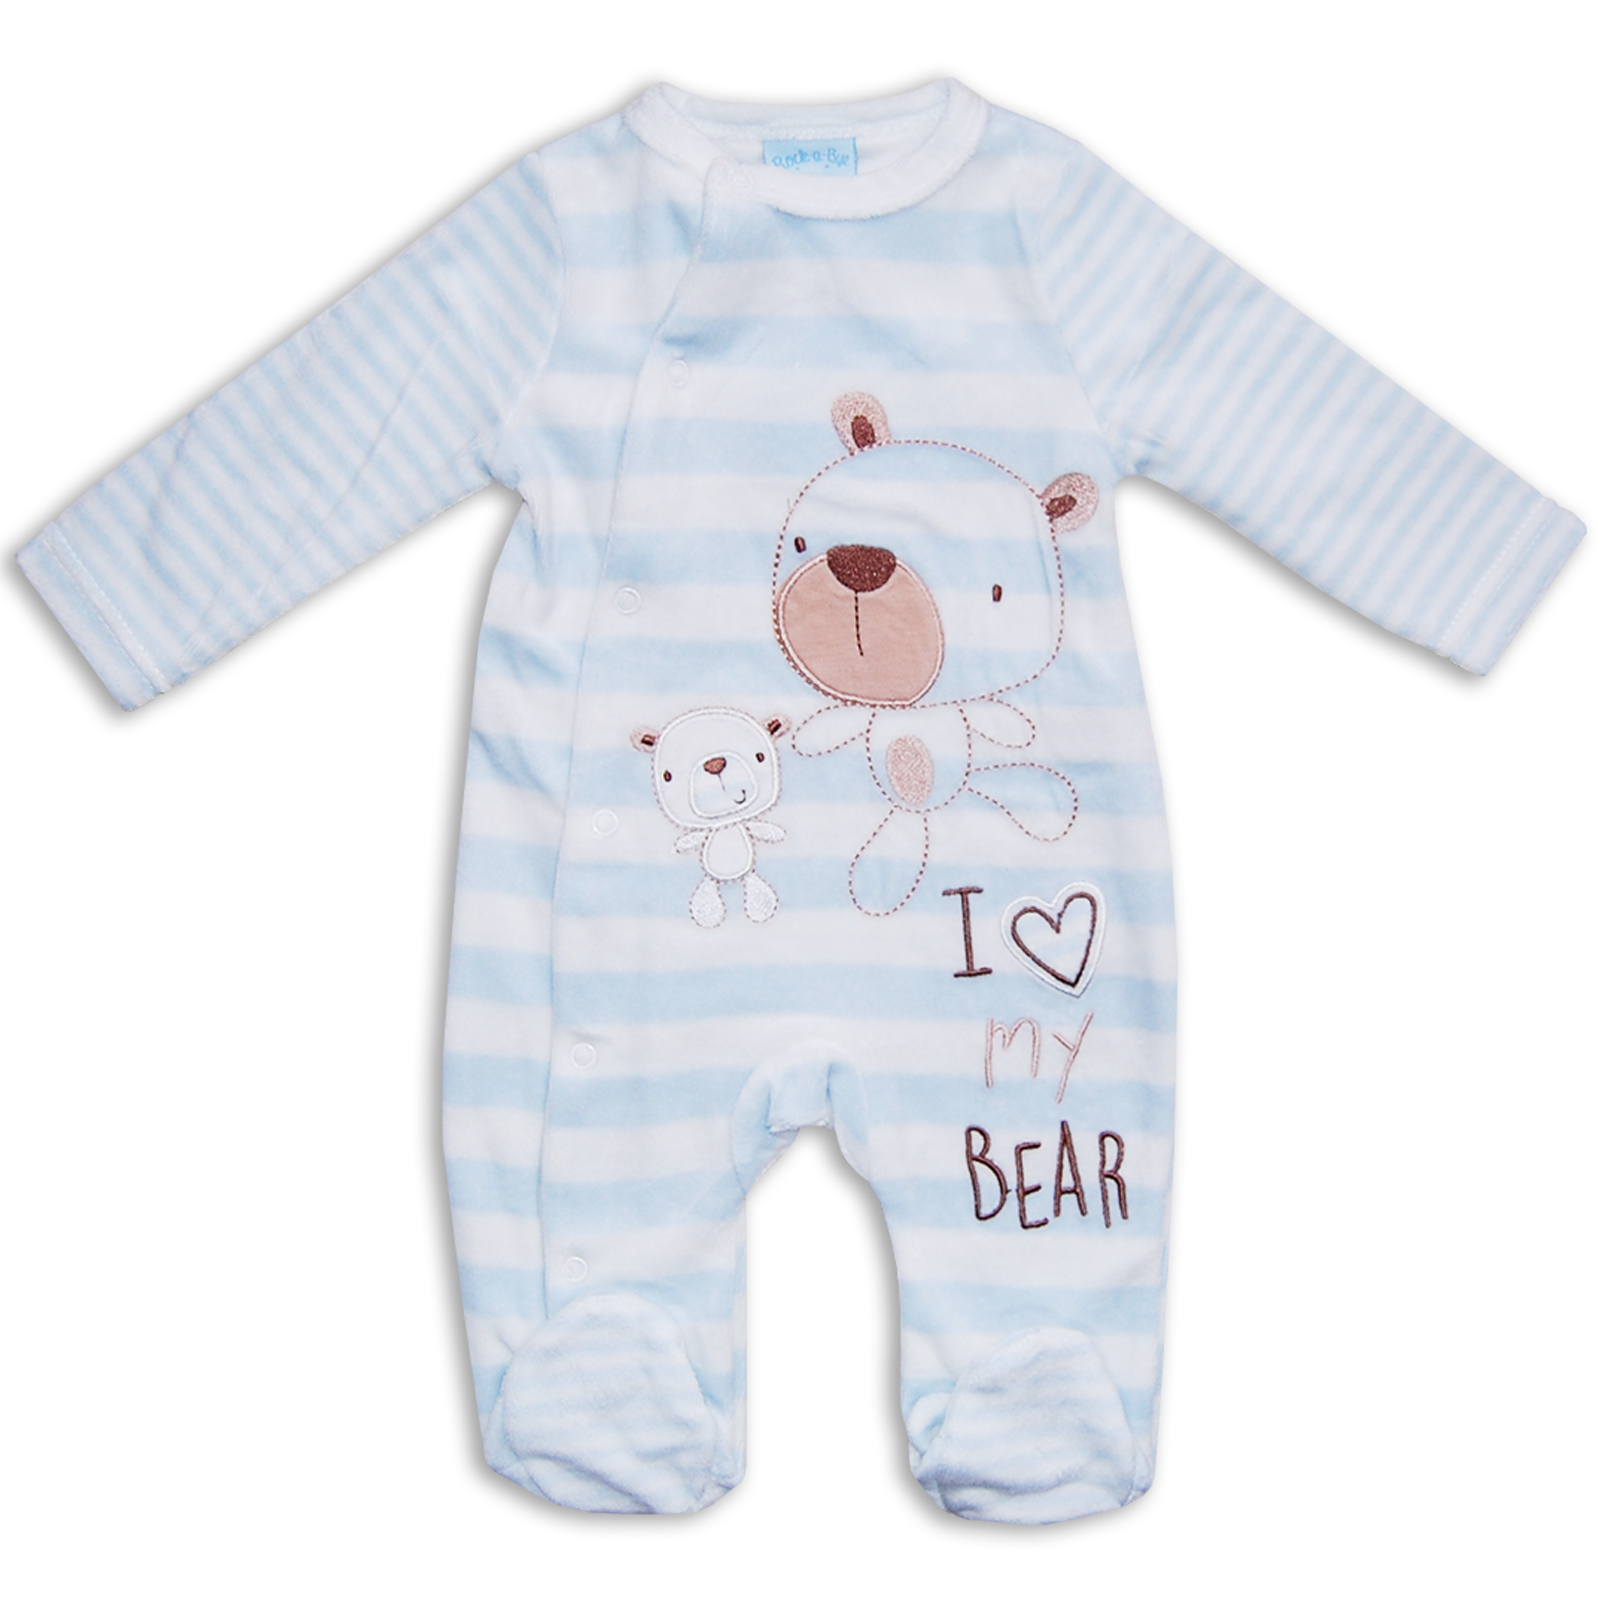 Shop for Clothes, Accessories & Bedding for Baby from the Kids department at Debenhams. You'll find the widest range of Sleepsuits & Bodysuits products online and delivered to your door. Shop today!